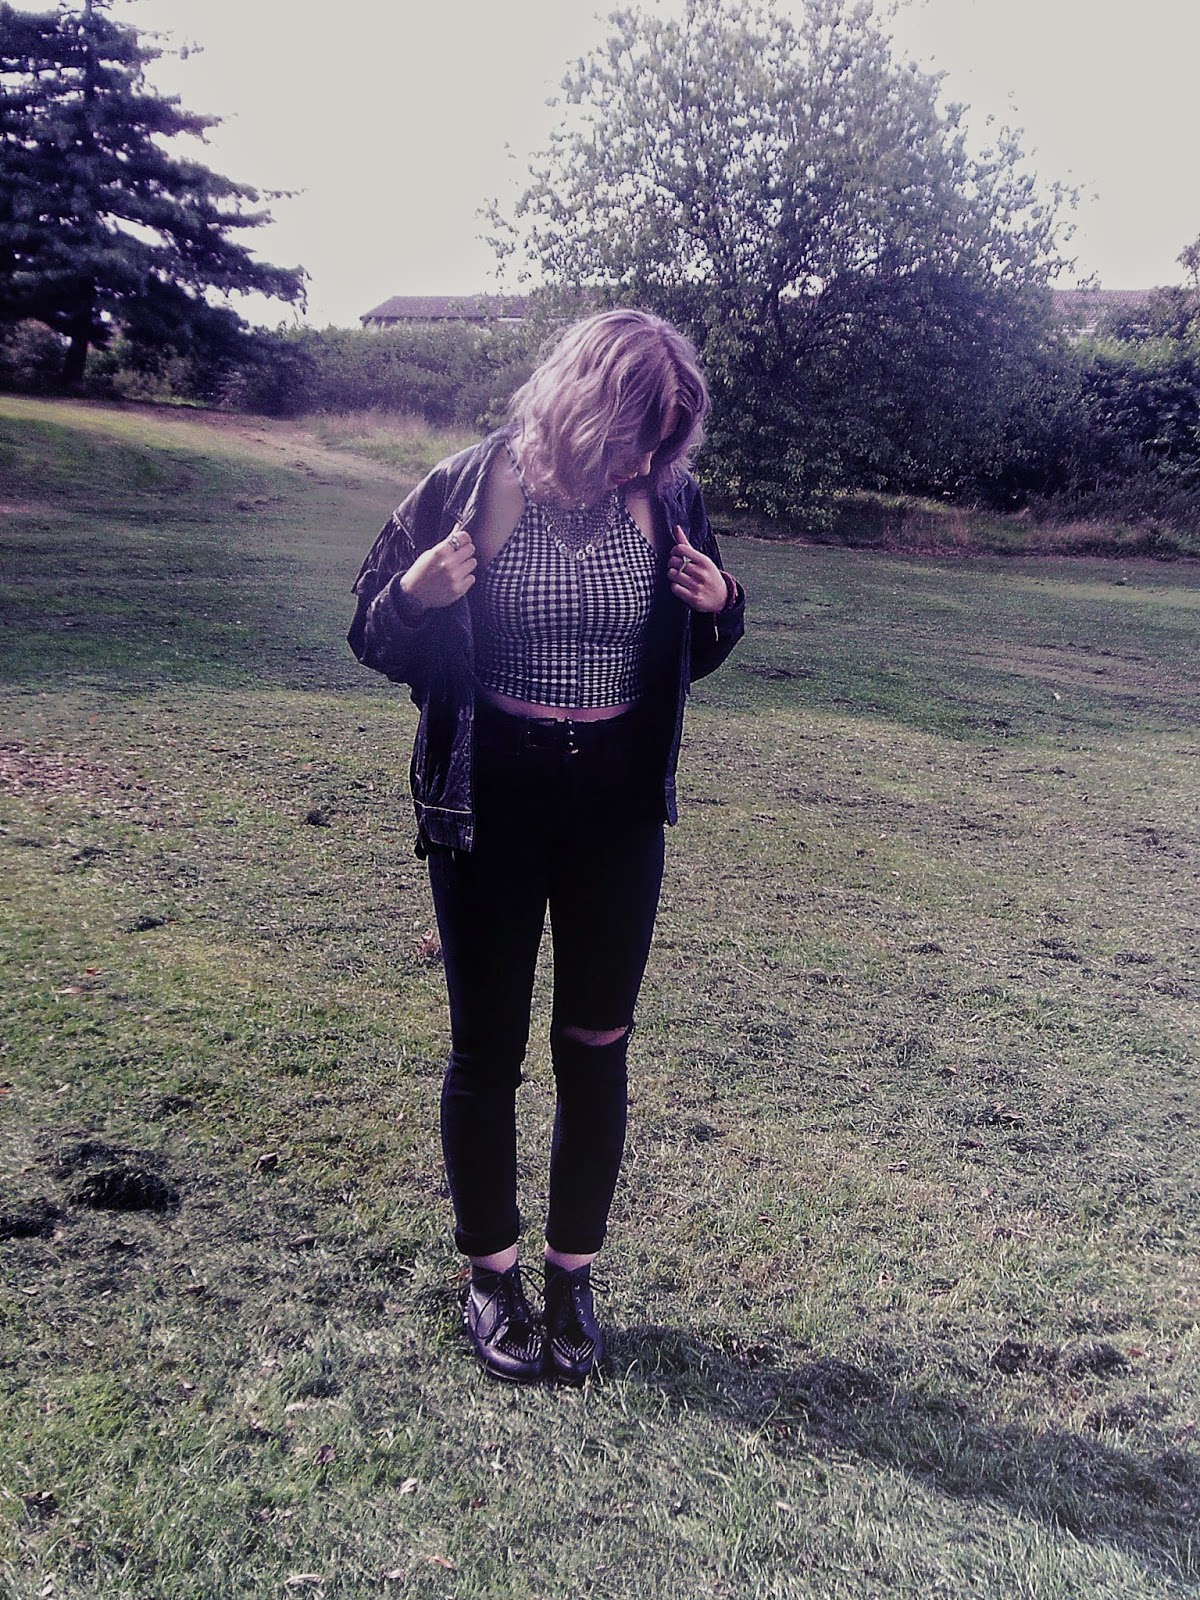 90's, 90's grunge, 90's fashion, 90's style, gingham top, ripped jeans, black skinny jeans, choker, leather jacket, fringed leather jacket, fringed jacket, platform boots, lilac hair